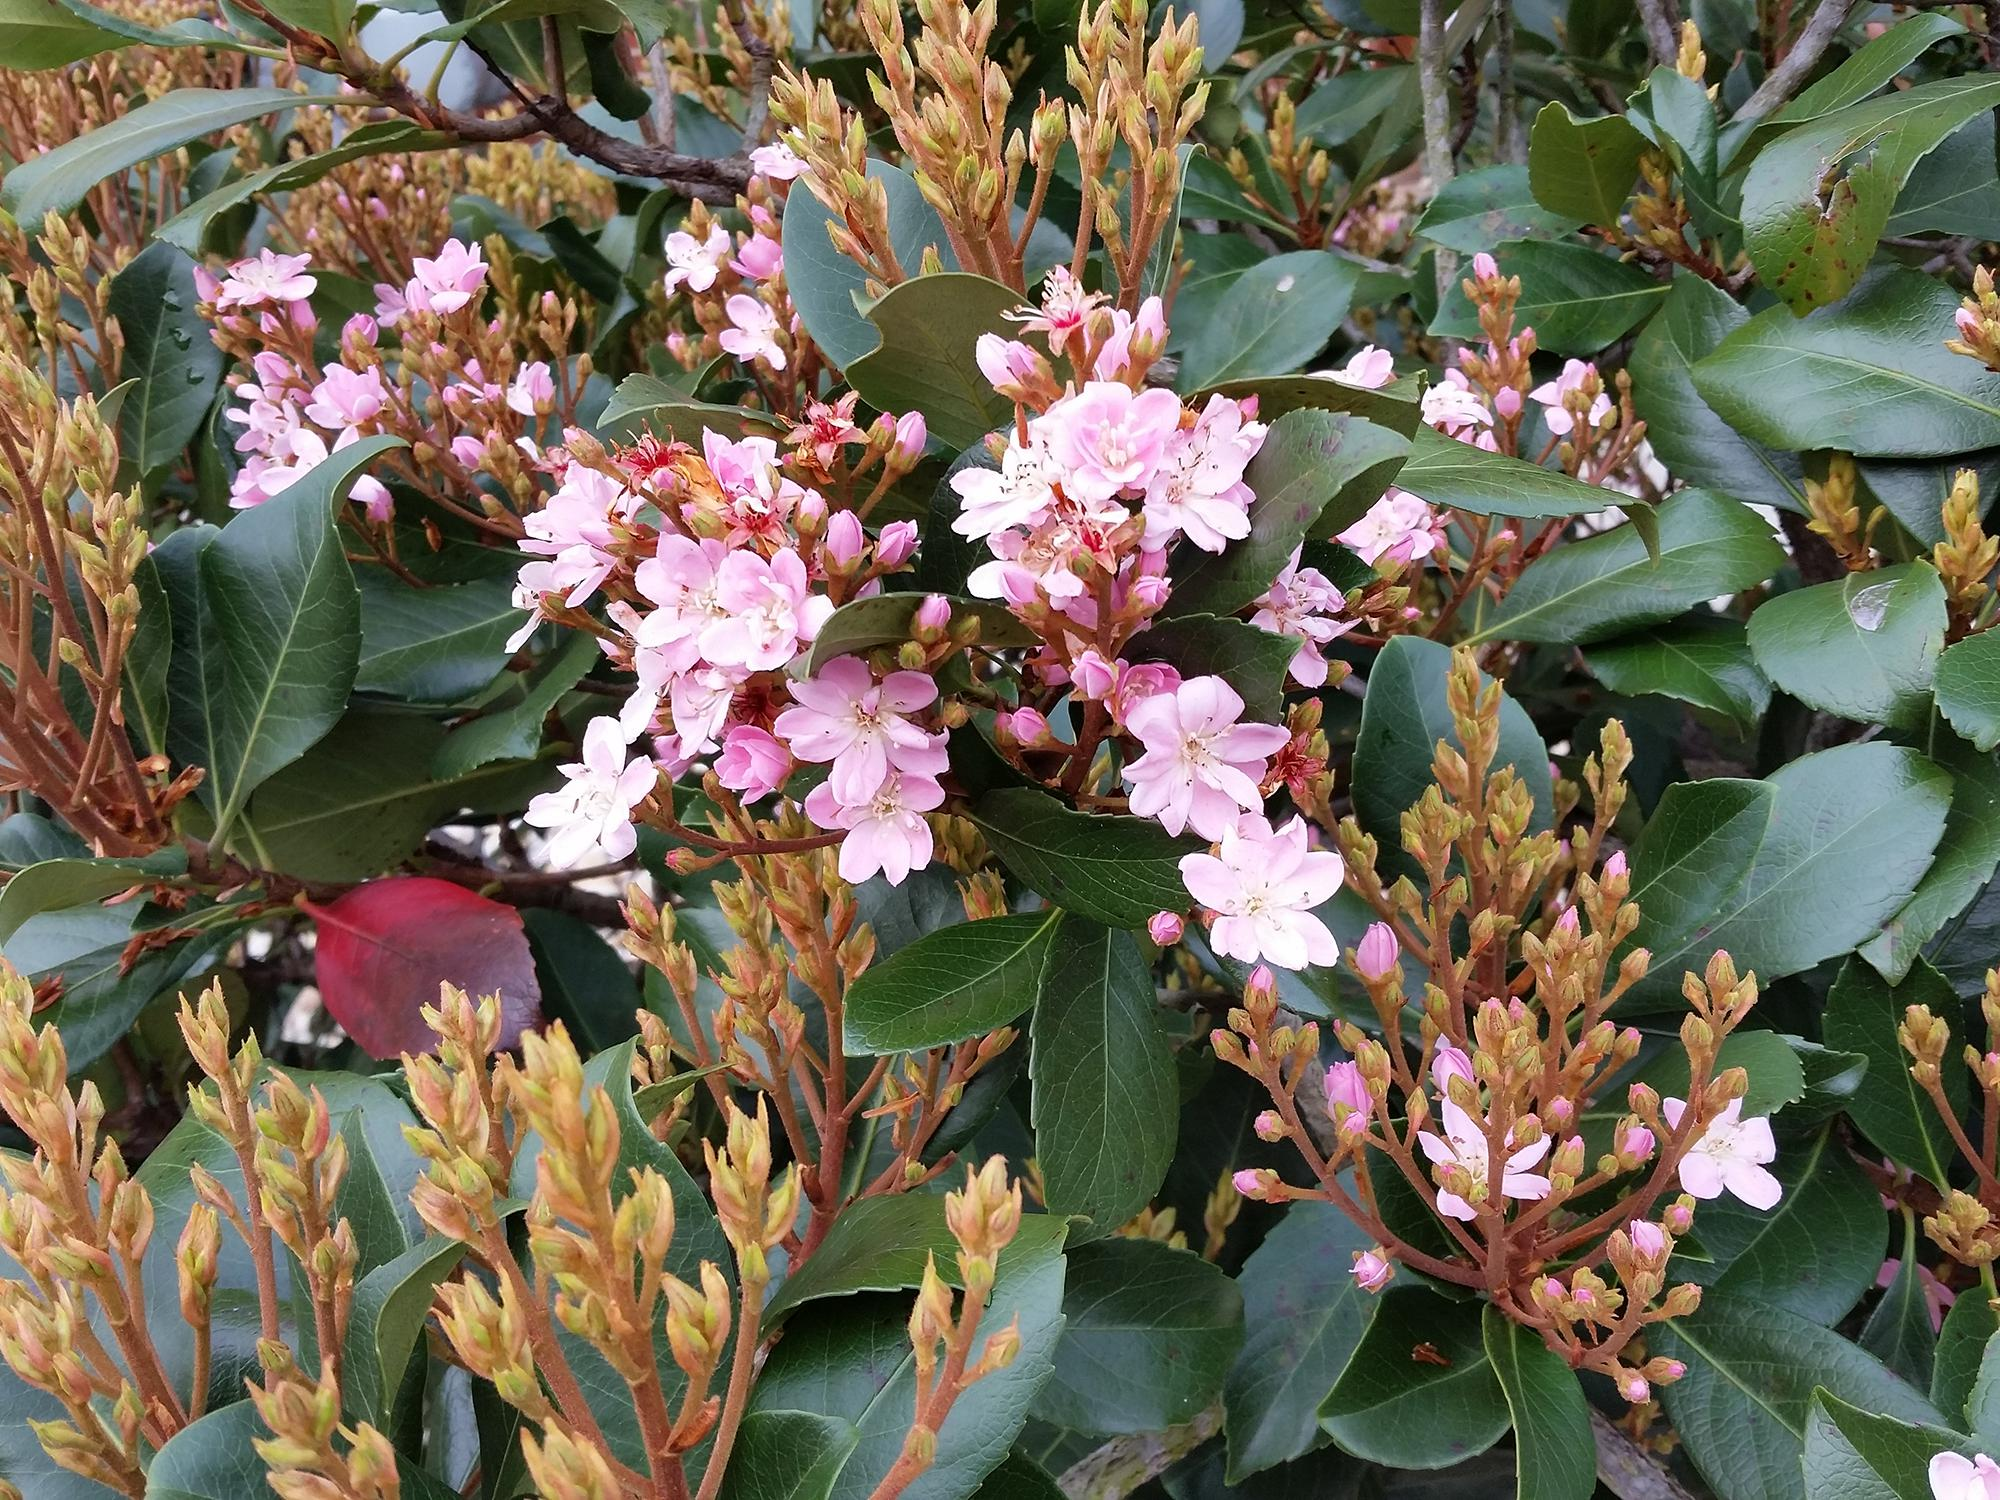 Indian hawthorns are typically small shrubs, but the Rosalinda selection can grow up to about 15 feet if left unpruned. It produces bright-pink flowers in late spring and early summer. (Photo by MSU Extension/Gary Bachman)